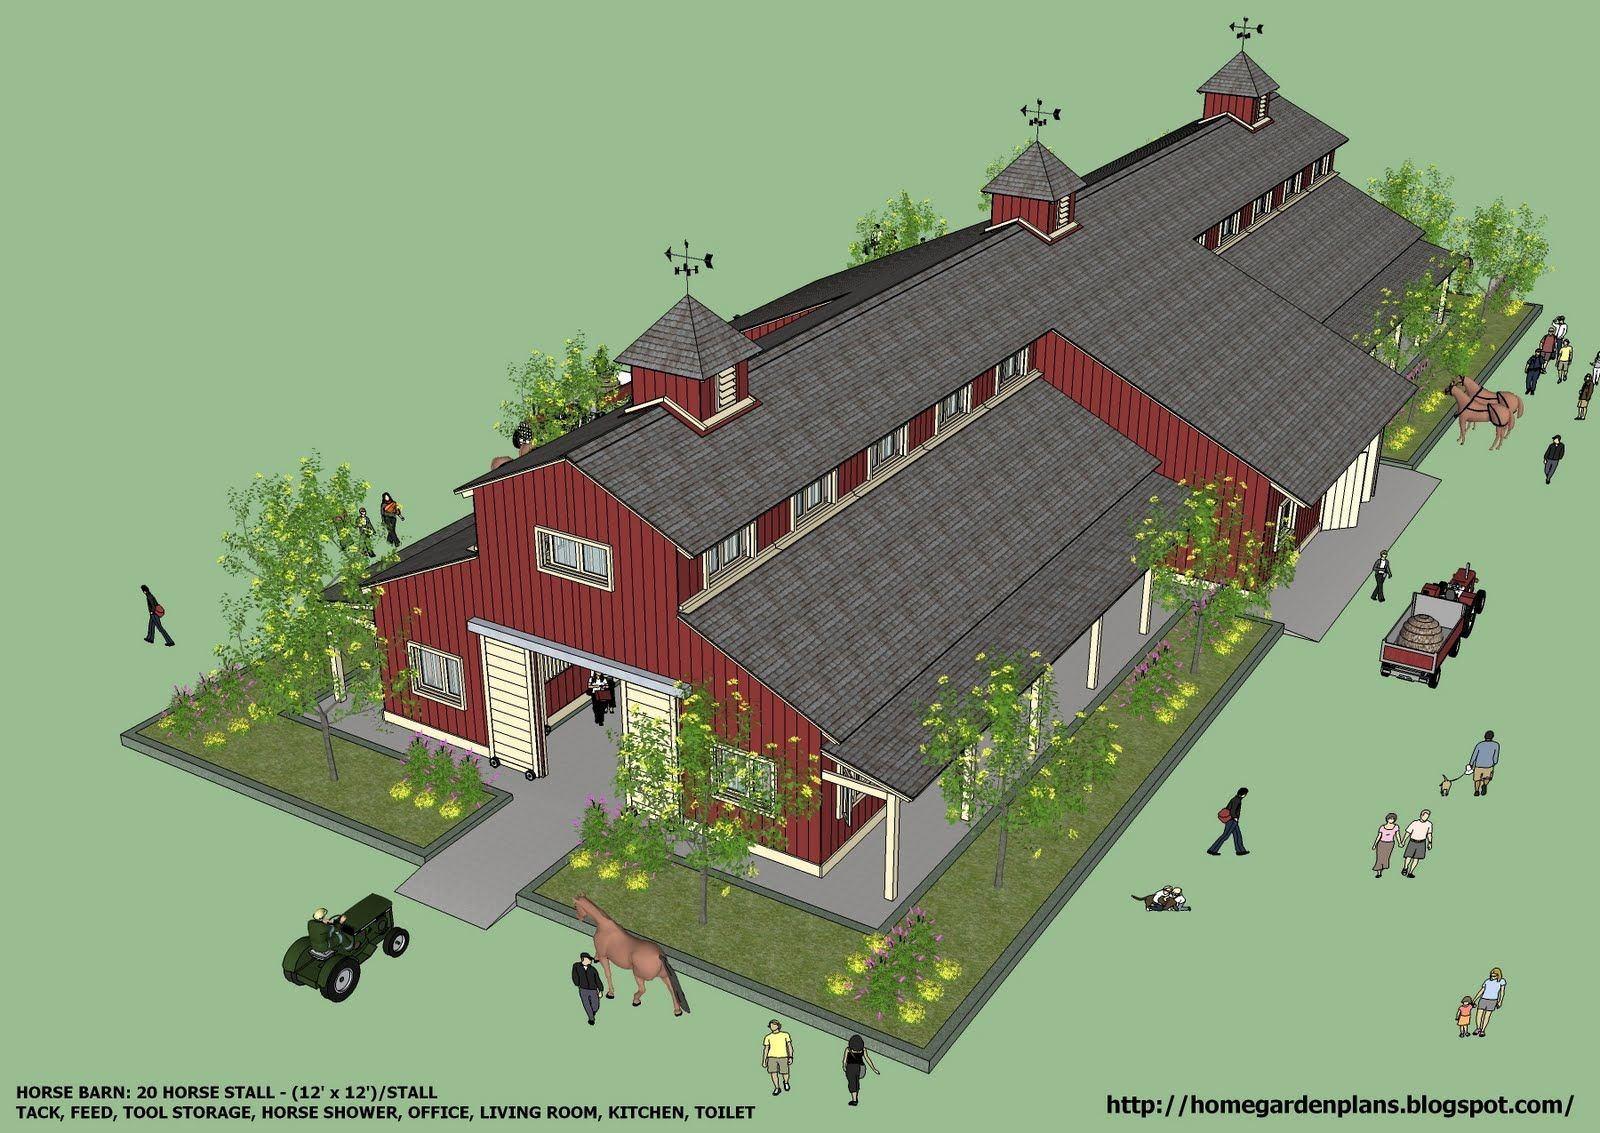 home garden plans: B20H - Large Horse Barn for 20 Horse ...